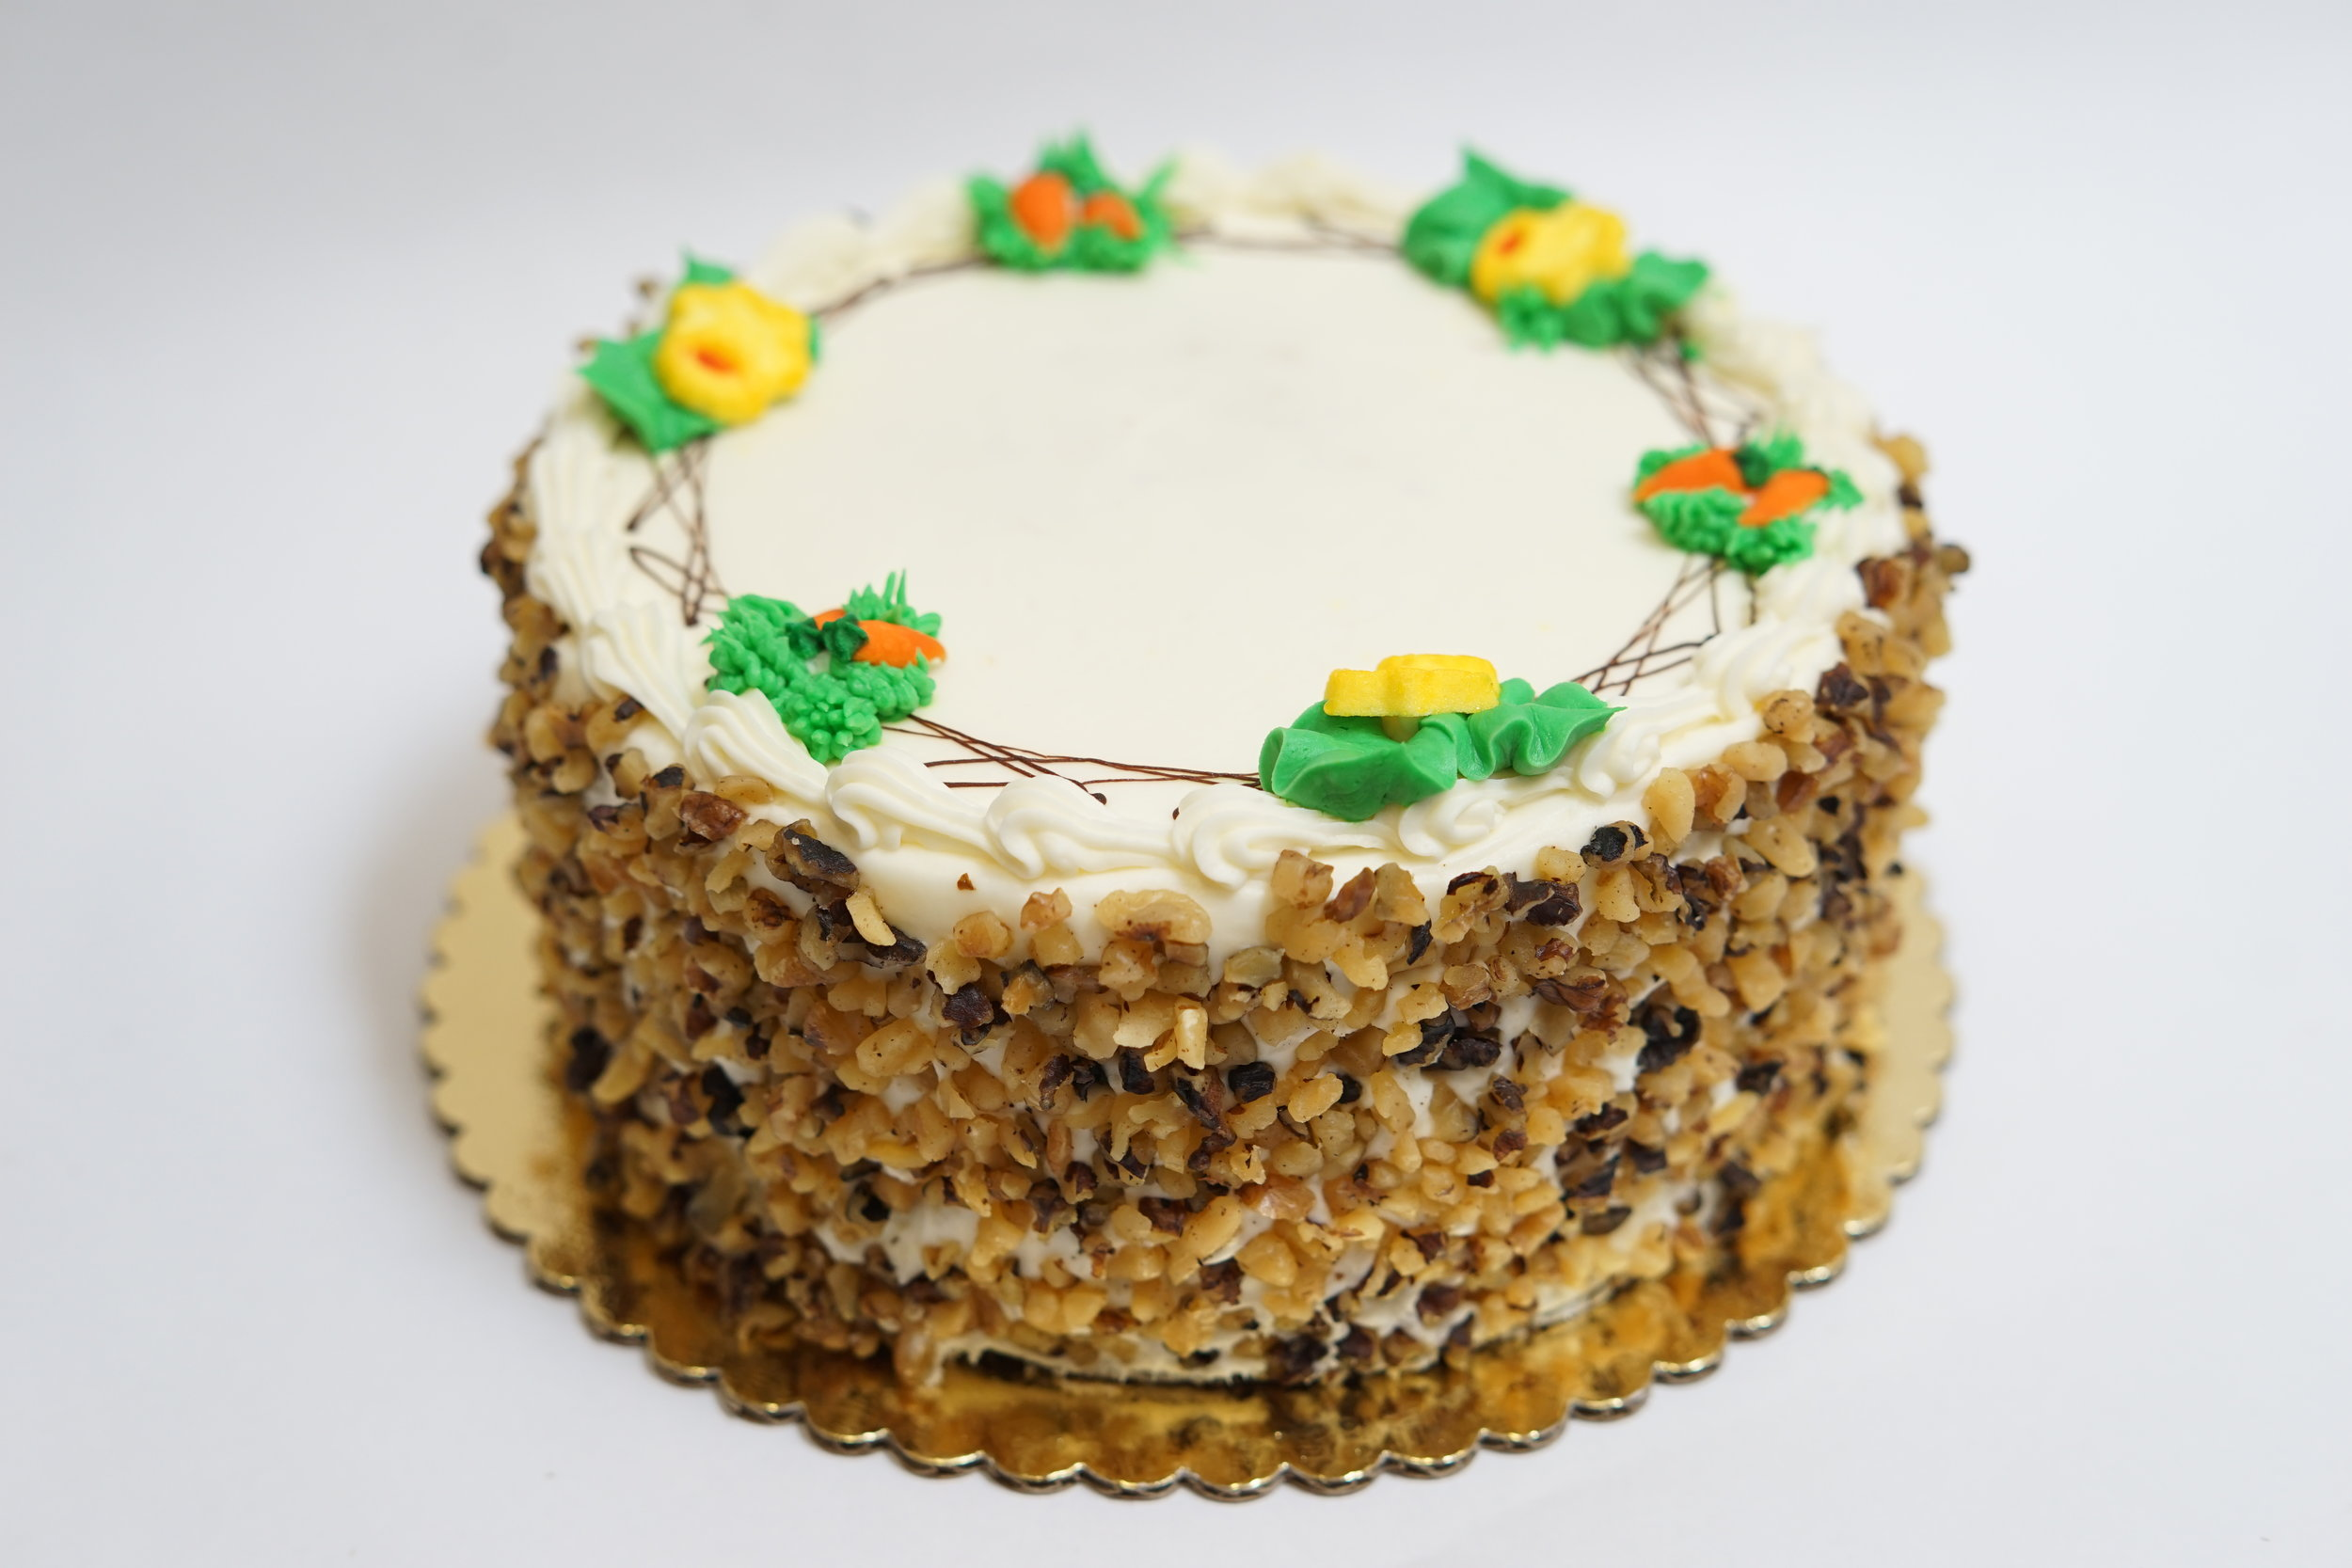 Carrot - A cake made with an organic, grated carrot, pecan and raisin mix. Filled with cream cheese icing and sides covered with walnuts.